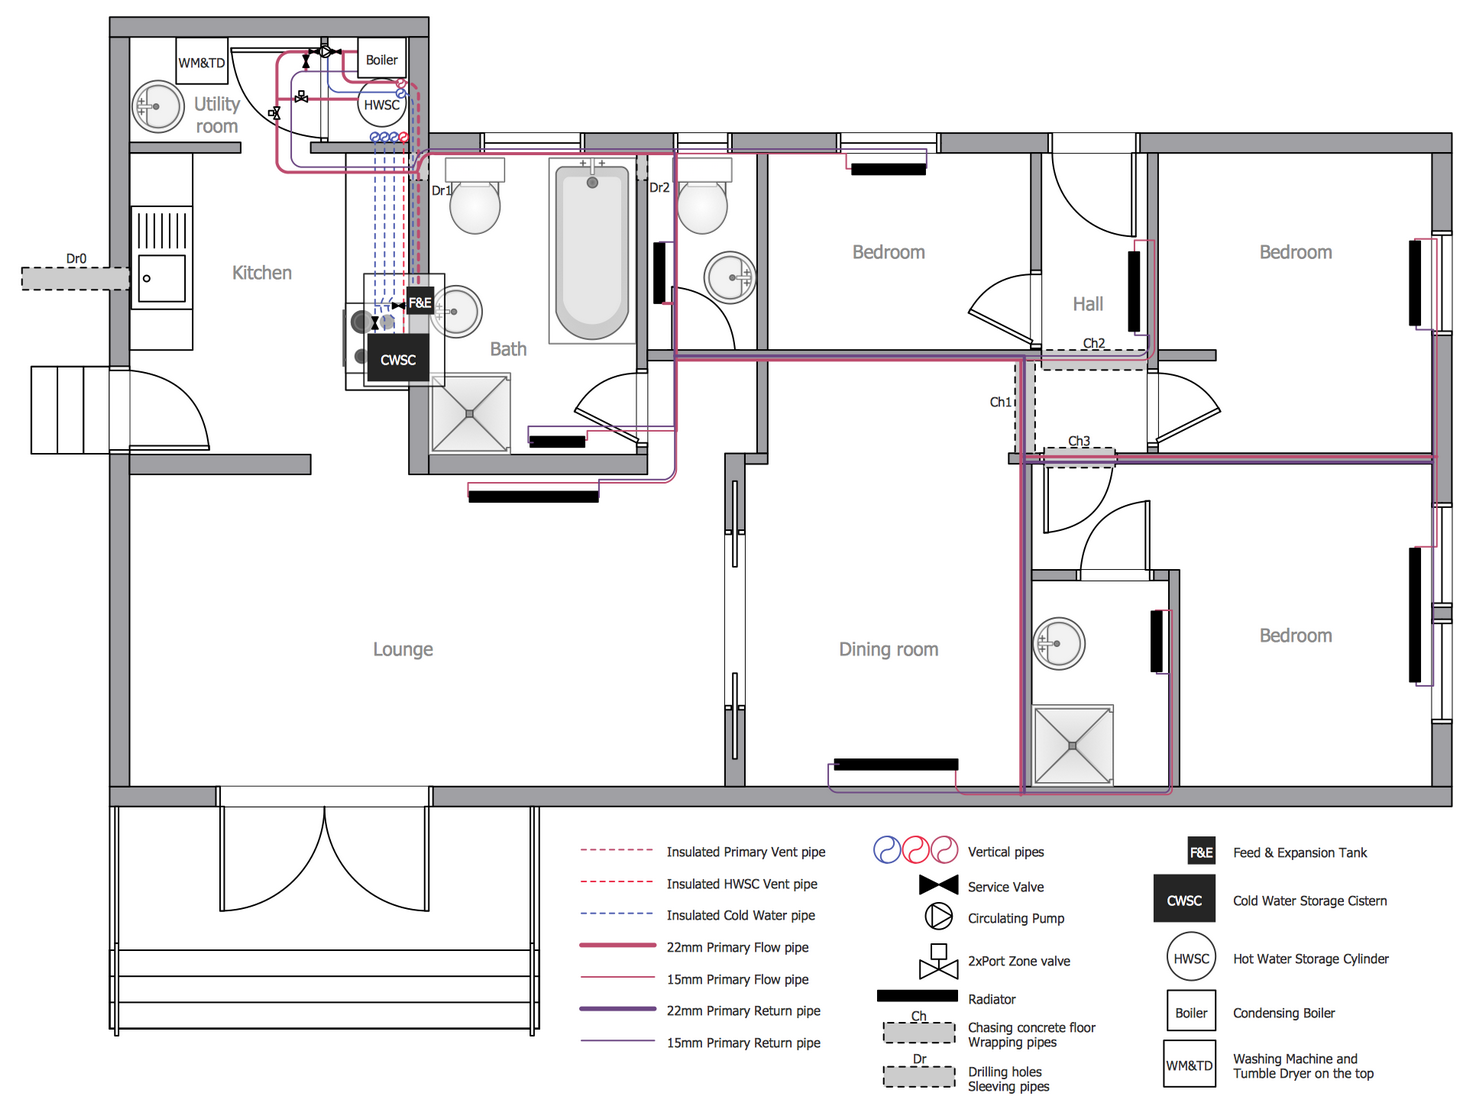 Plumbing and piping plans solution for Building plan drawing